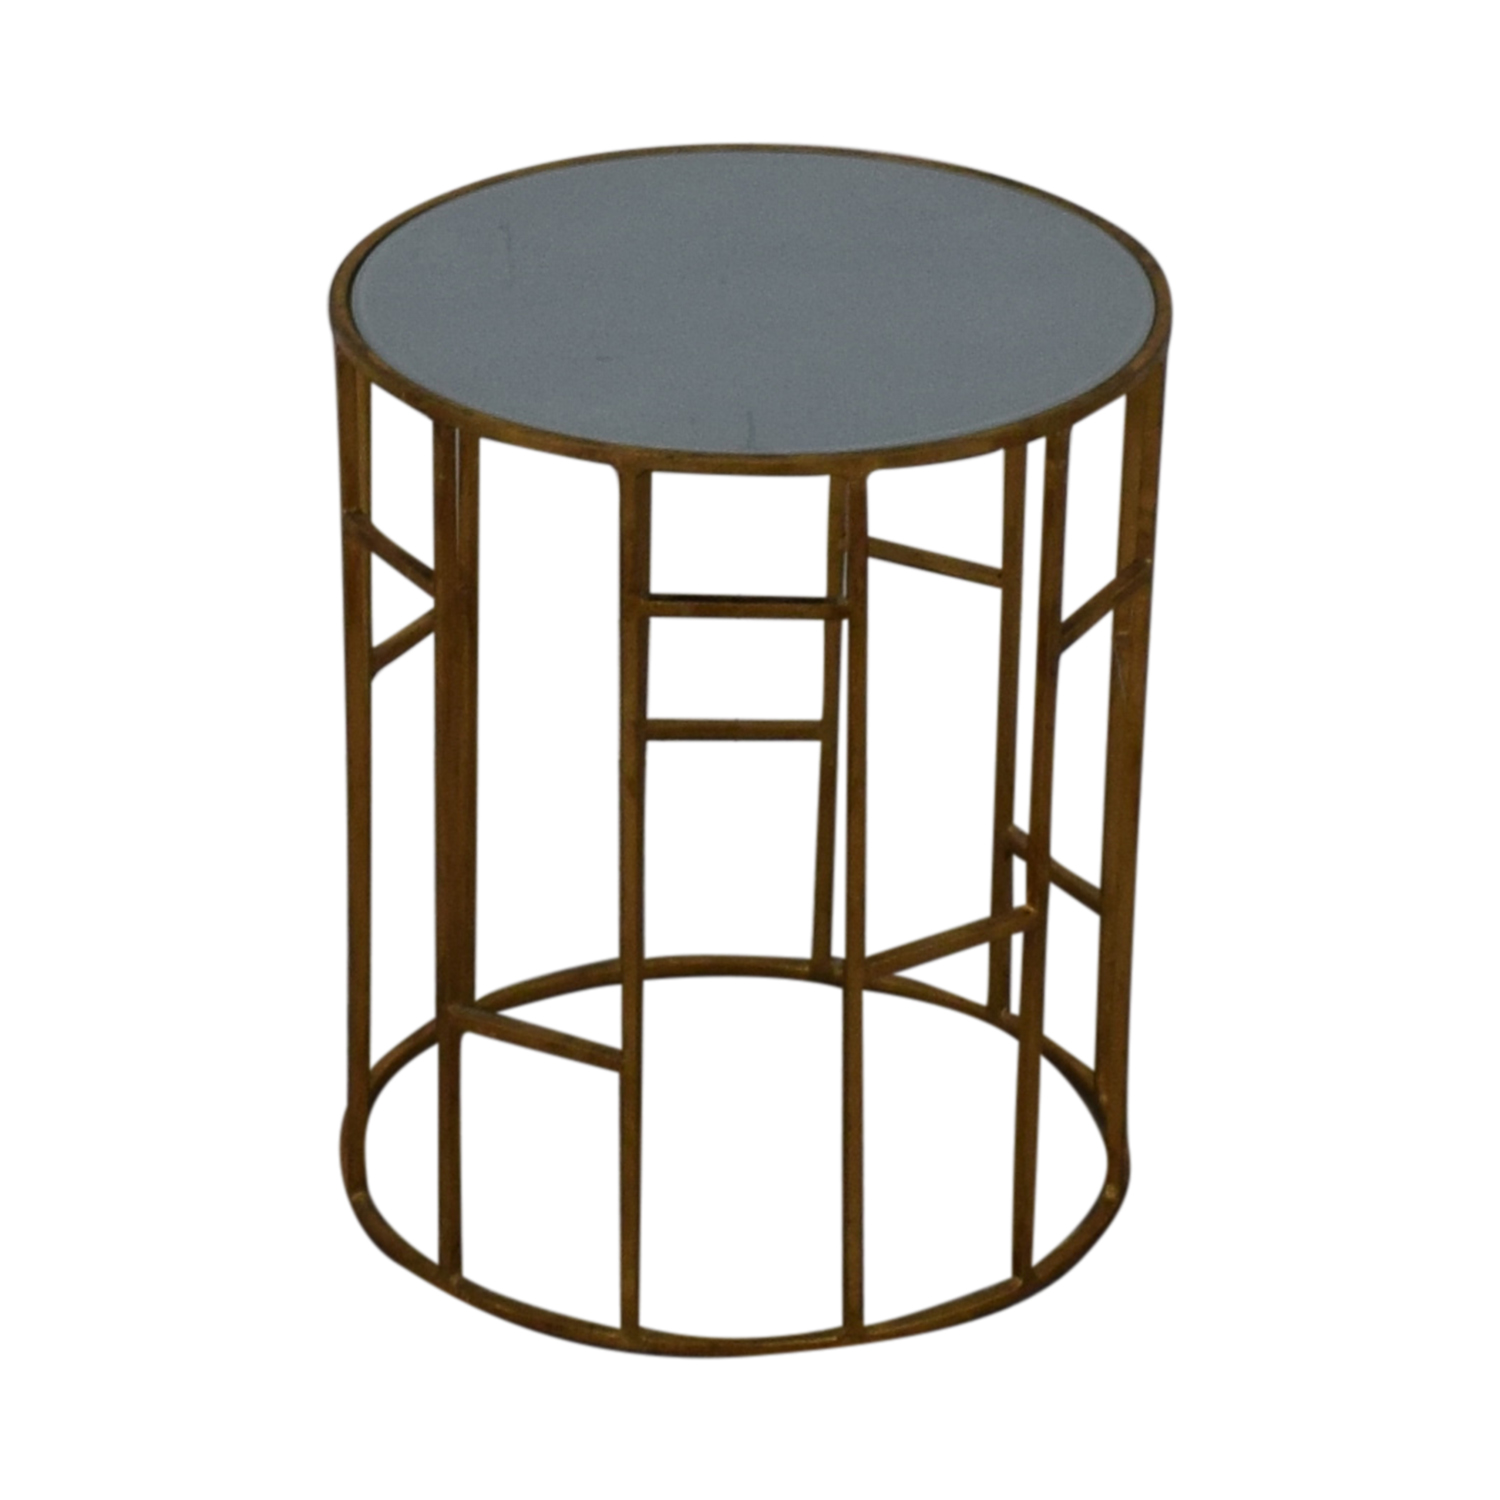 Safavieh Safavieh Doreen Gold & Glass Accent Table dimensions